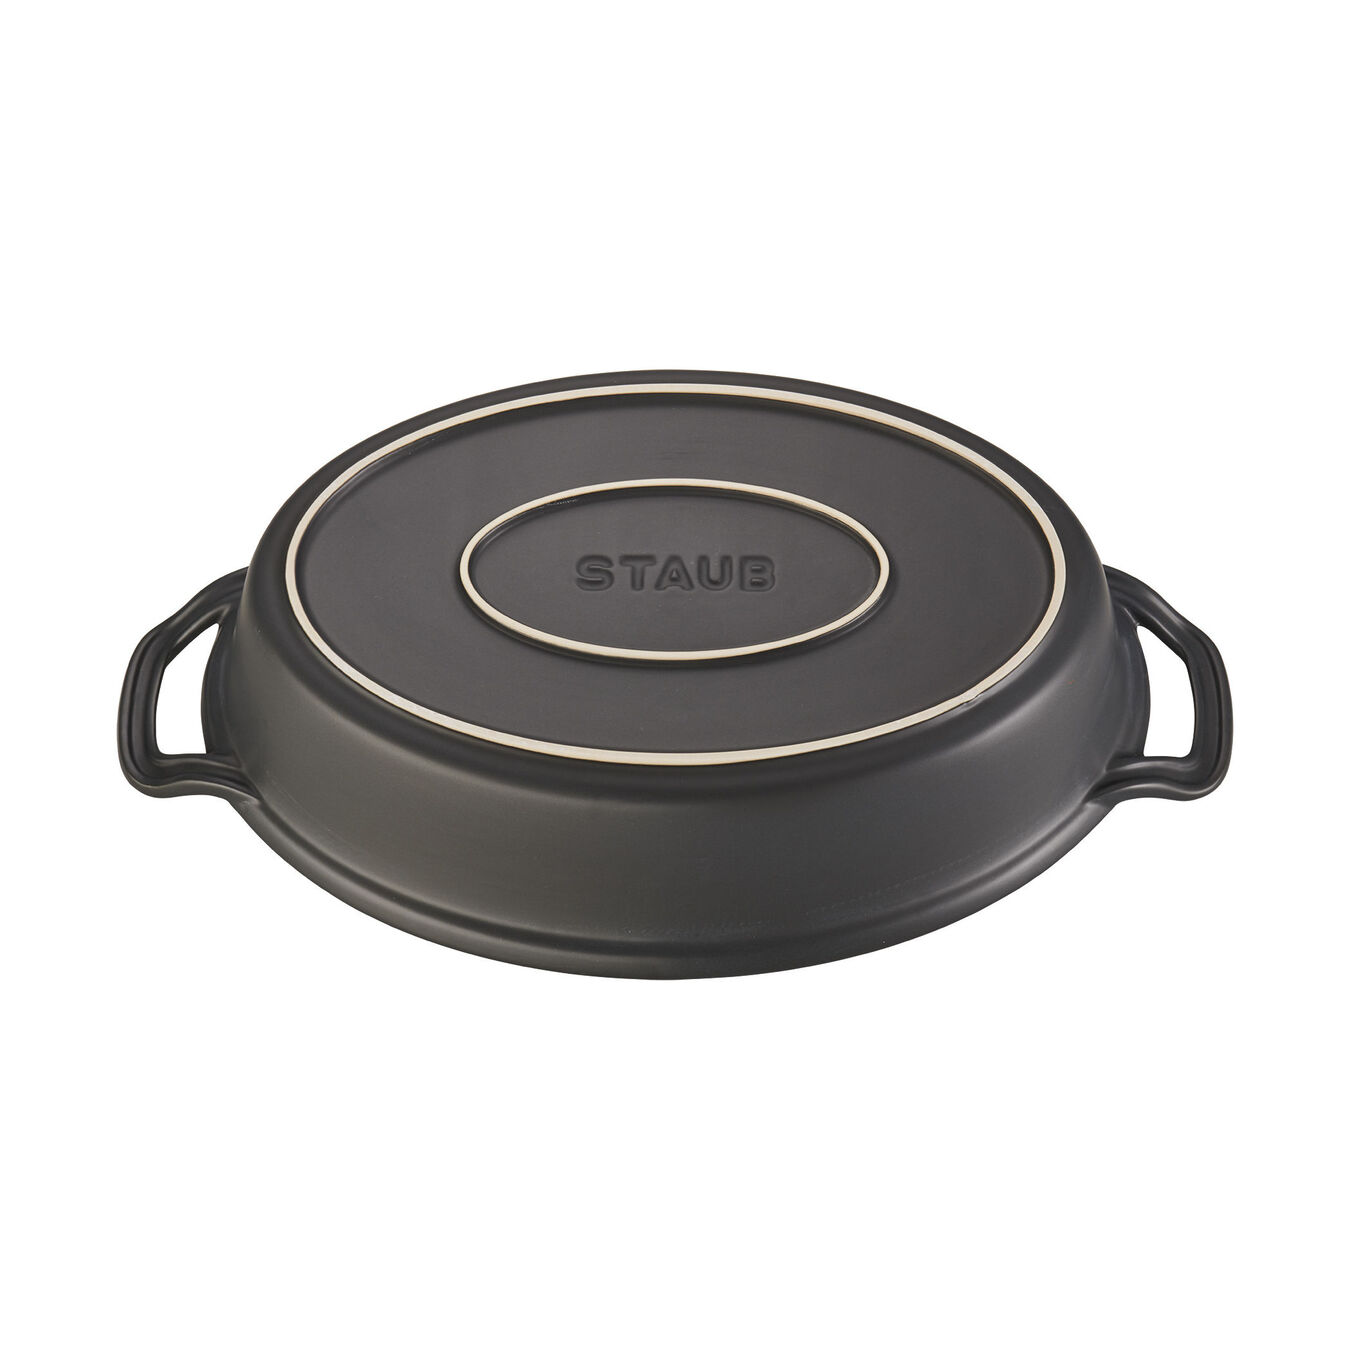 14-inch Oval Covered Baking Dish - Matte Black,,large 3